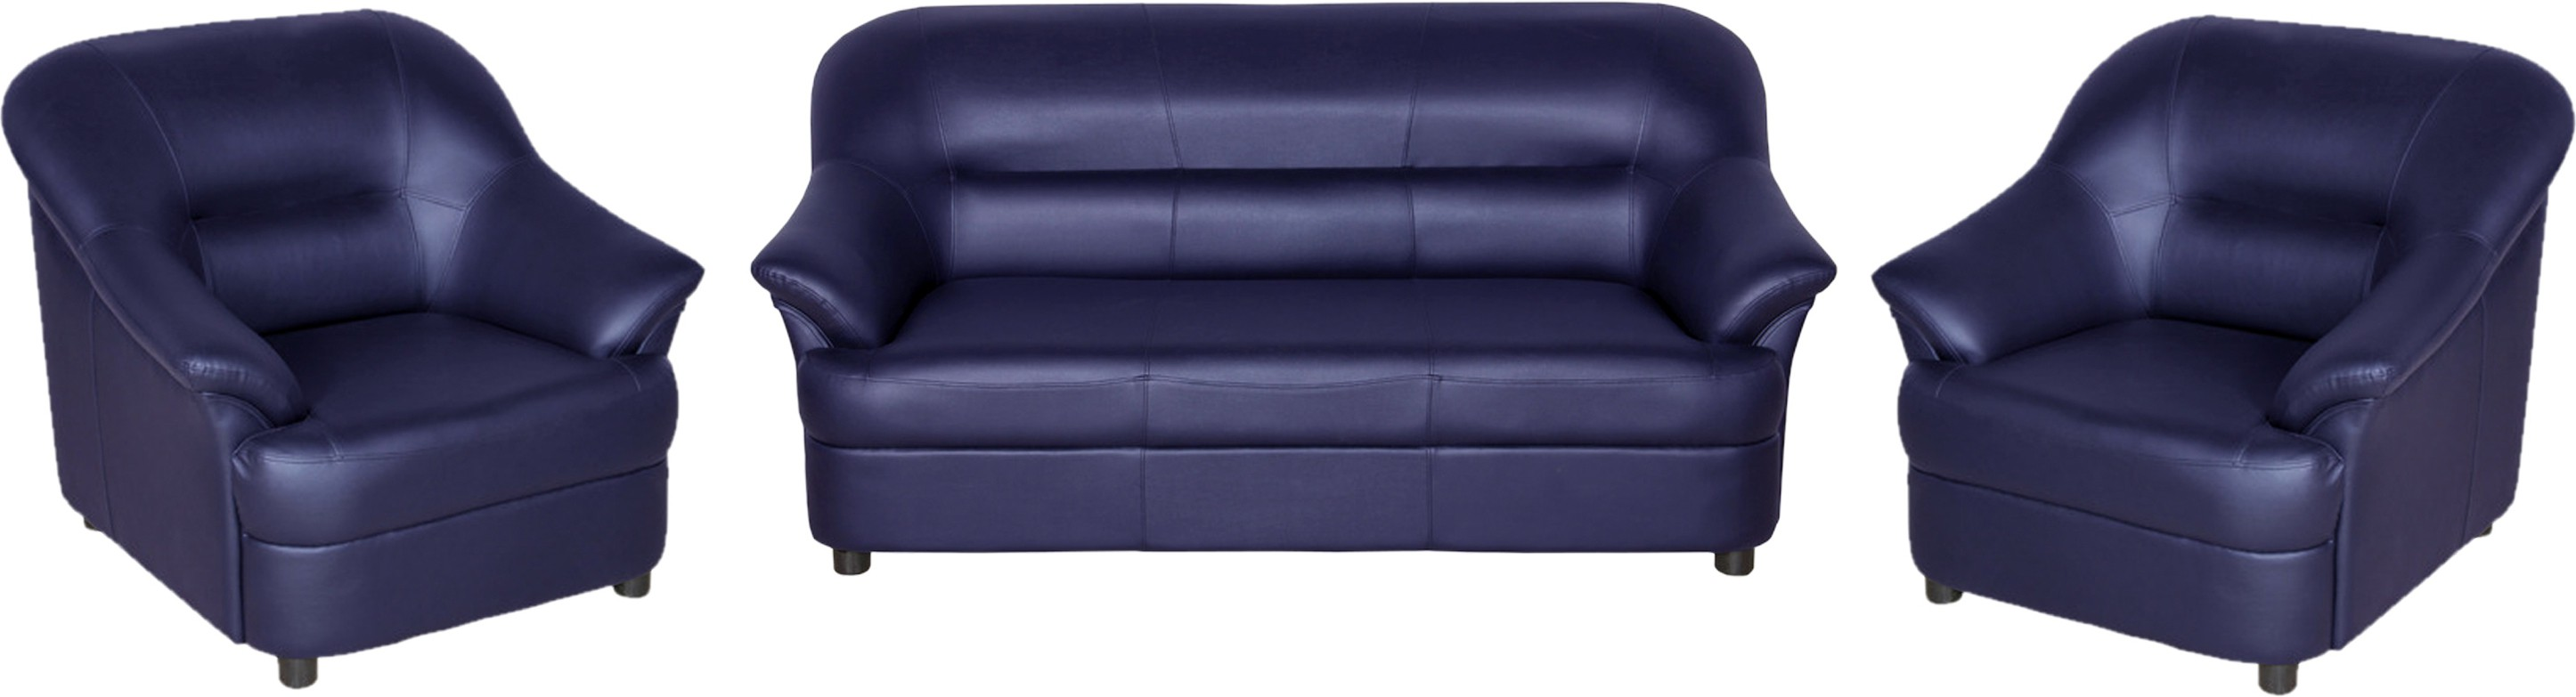 View Sethu Furniture Fabric 3 + 1 + 1 Violet Sofa Set(Configuration - Straight) Furniture (Sethu Furniture)